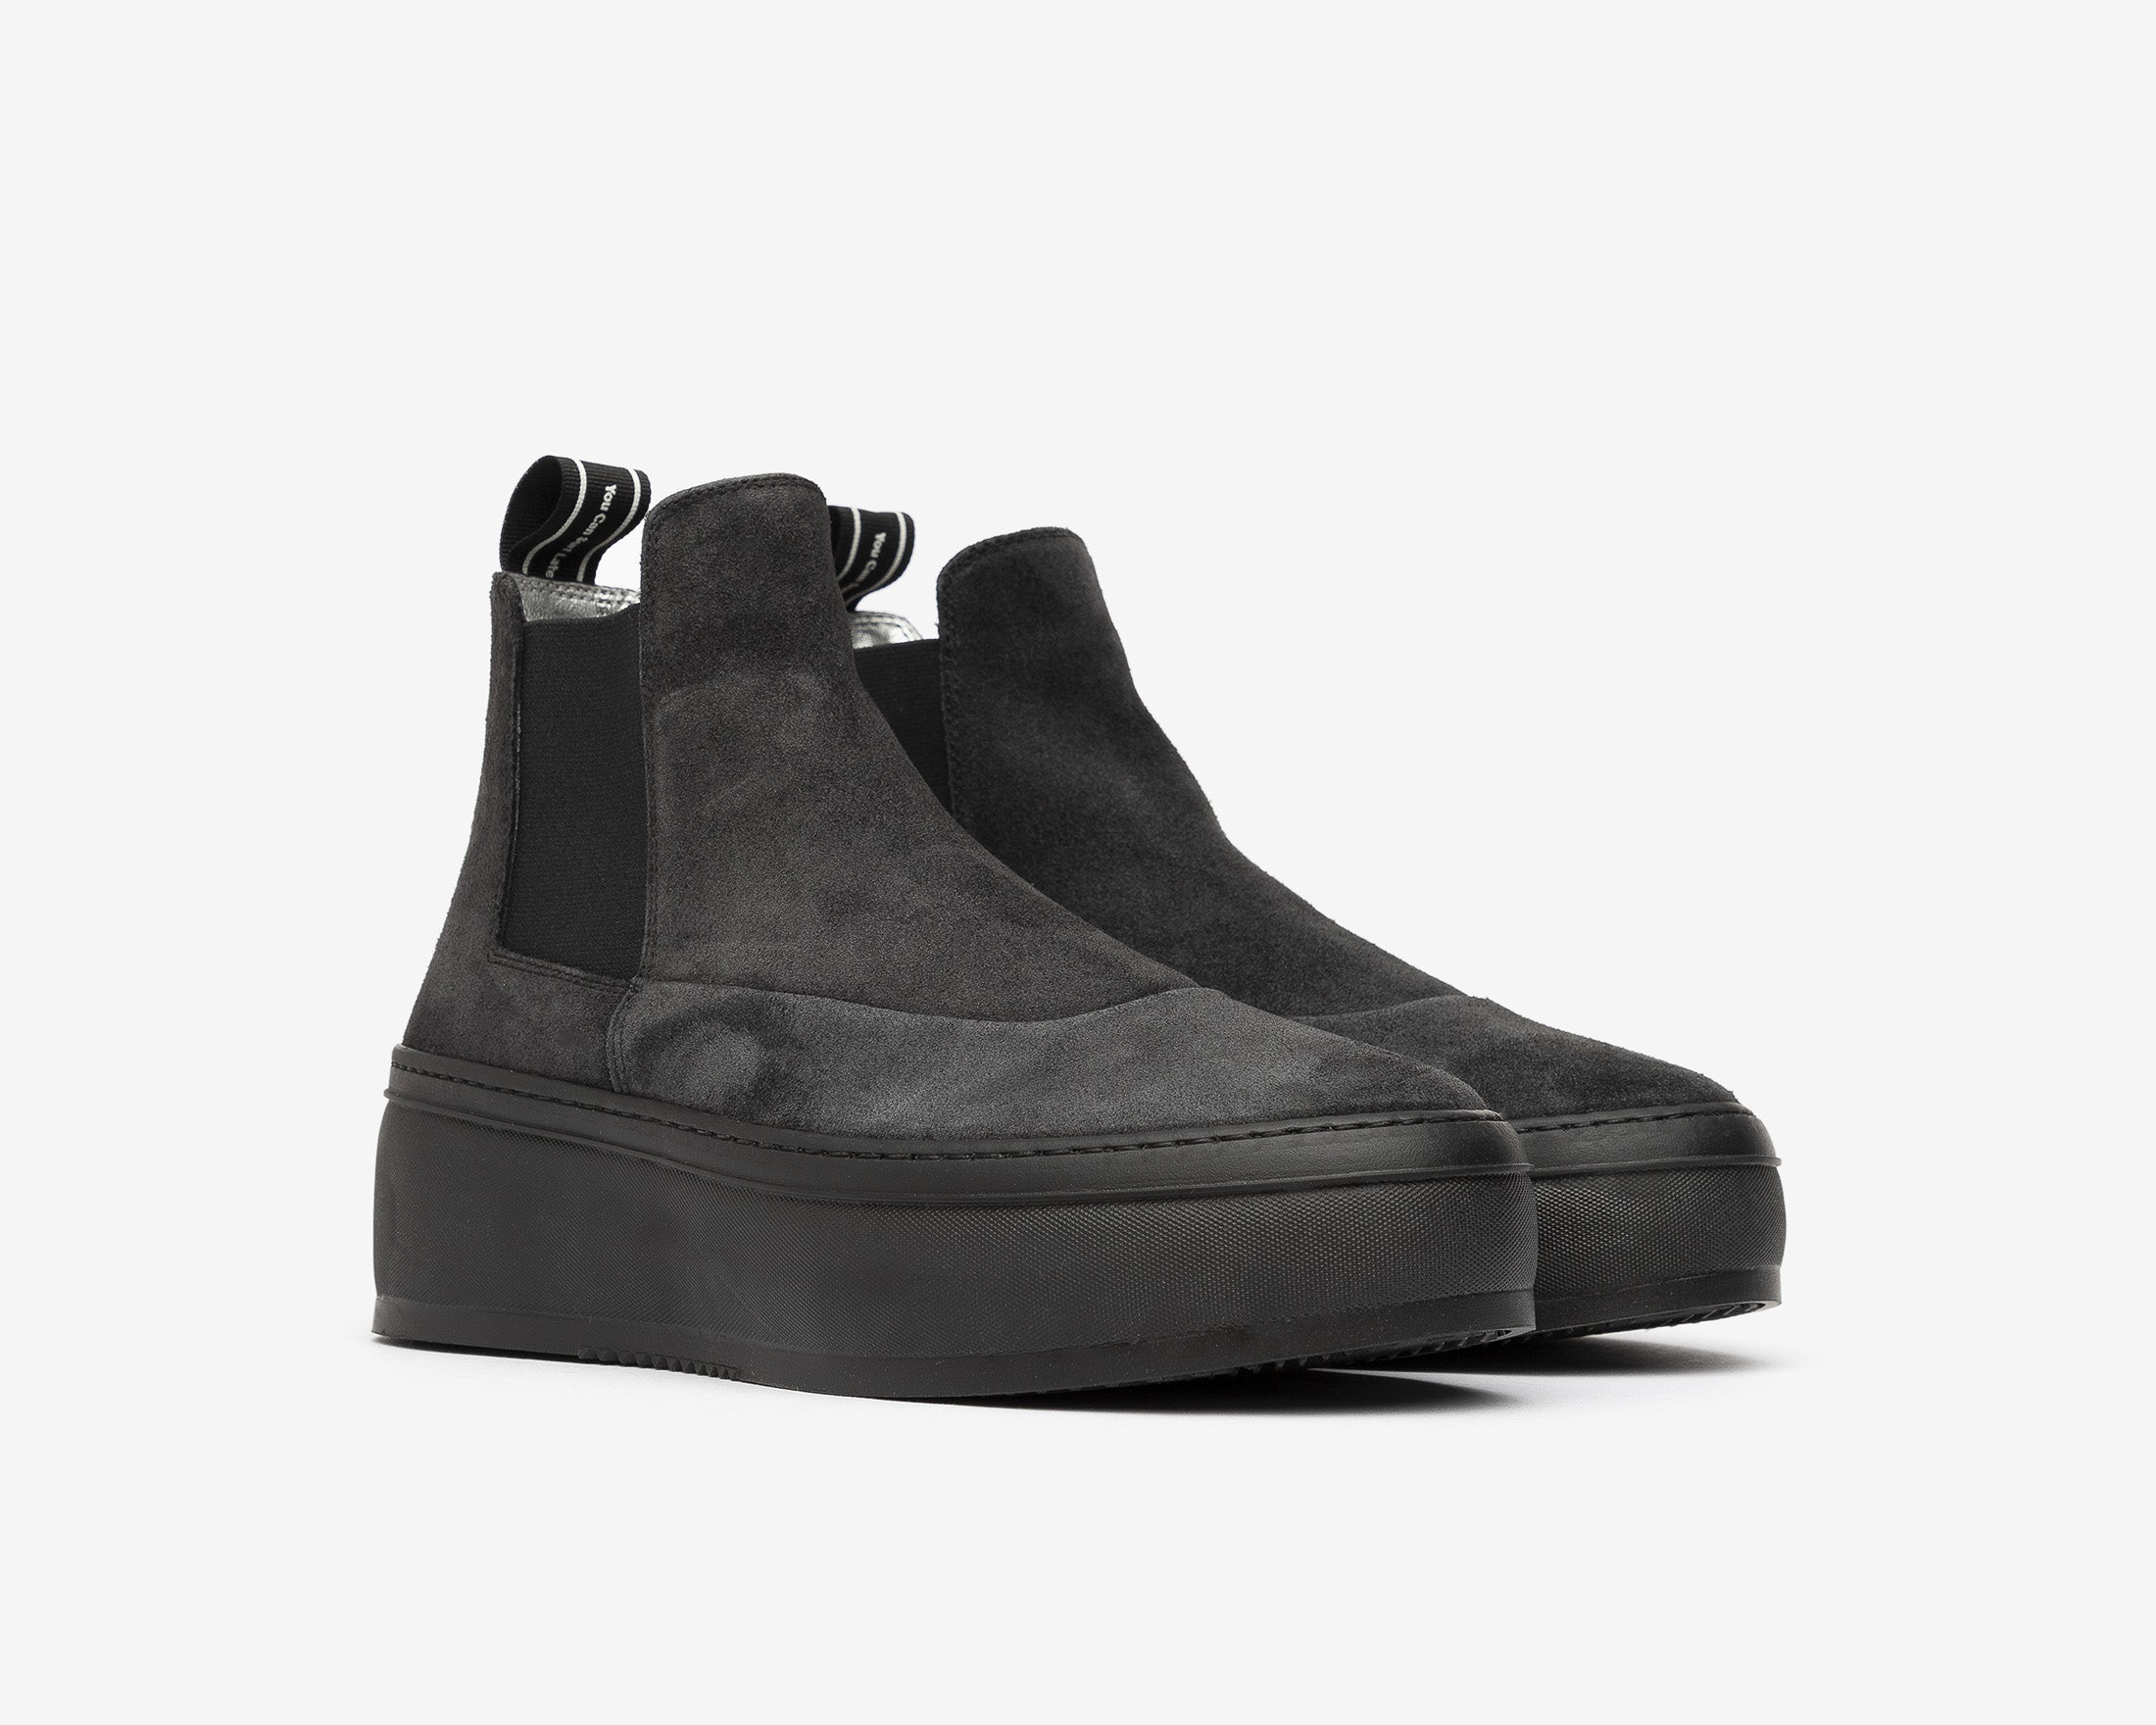 Lucy Chunky Platform Sneaker in Black/Army Zeb - Side